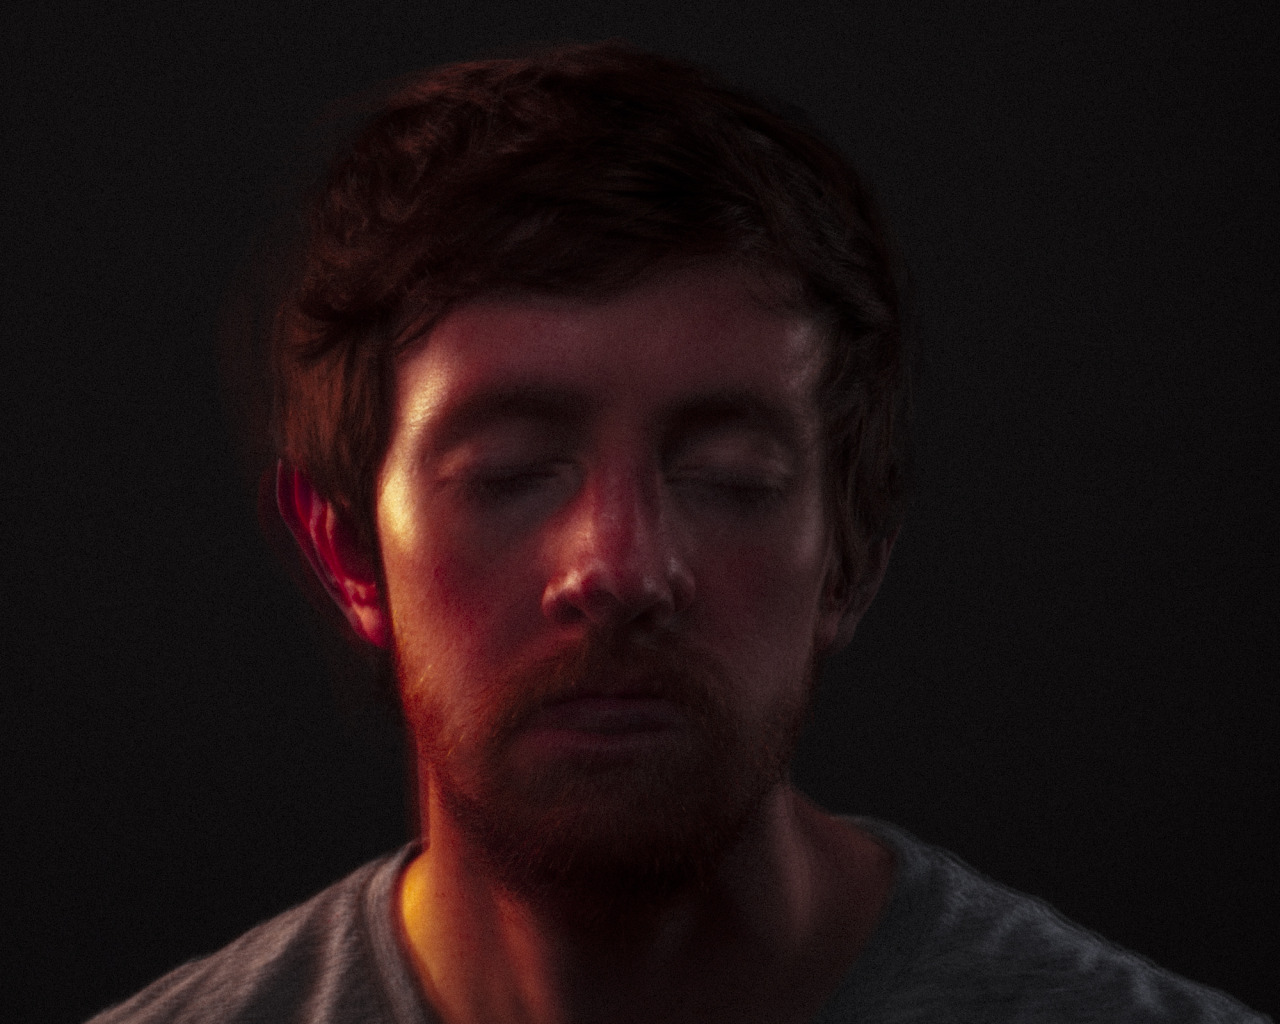 Self Portrait, Spring 2013. Double exposure in camera. Color shift is caused form keeping the modeling bulb on in the rim light at camera left.  Also set up a behance profile this week.. check it and ad me if you have one.  http://www.behance.net/sethlowephoto   Have a great Sunday! Seth